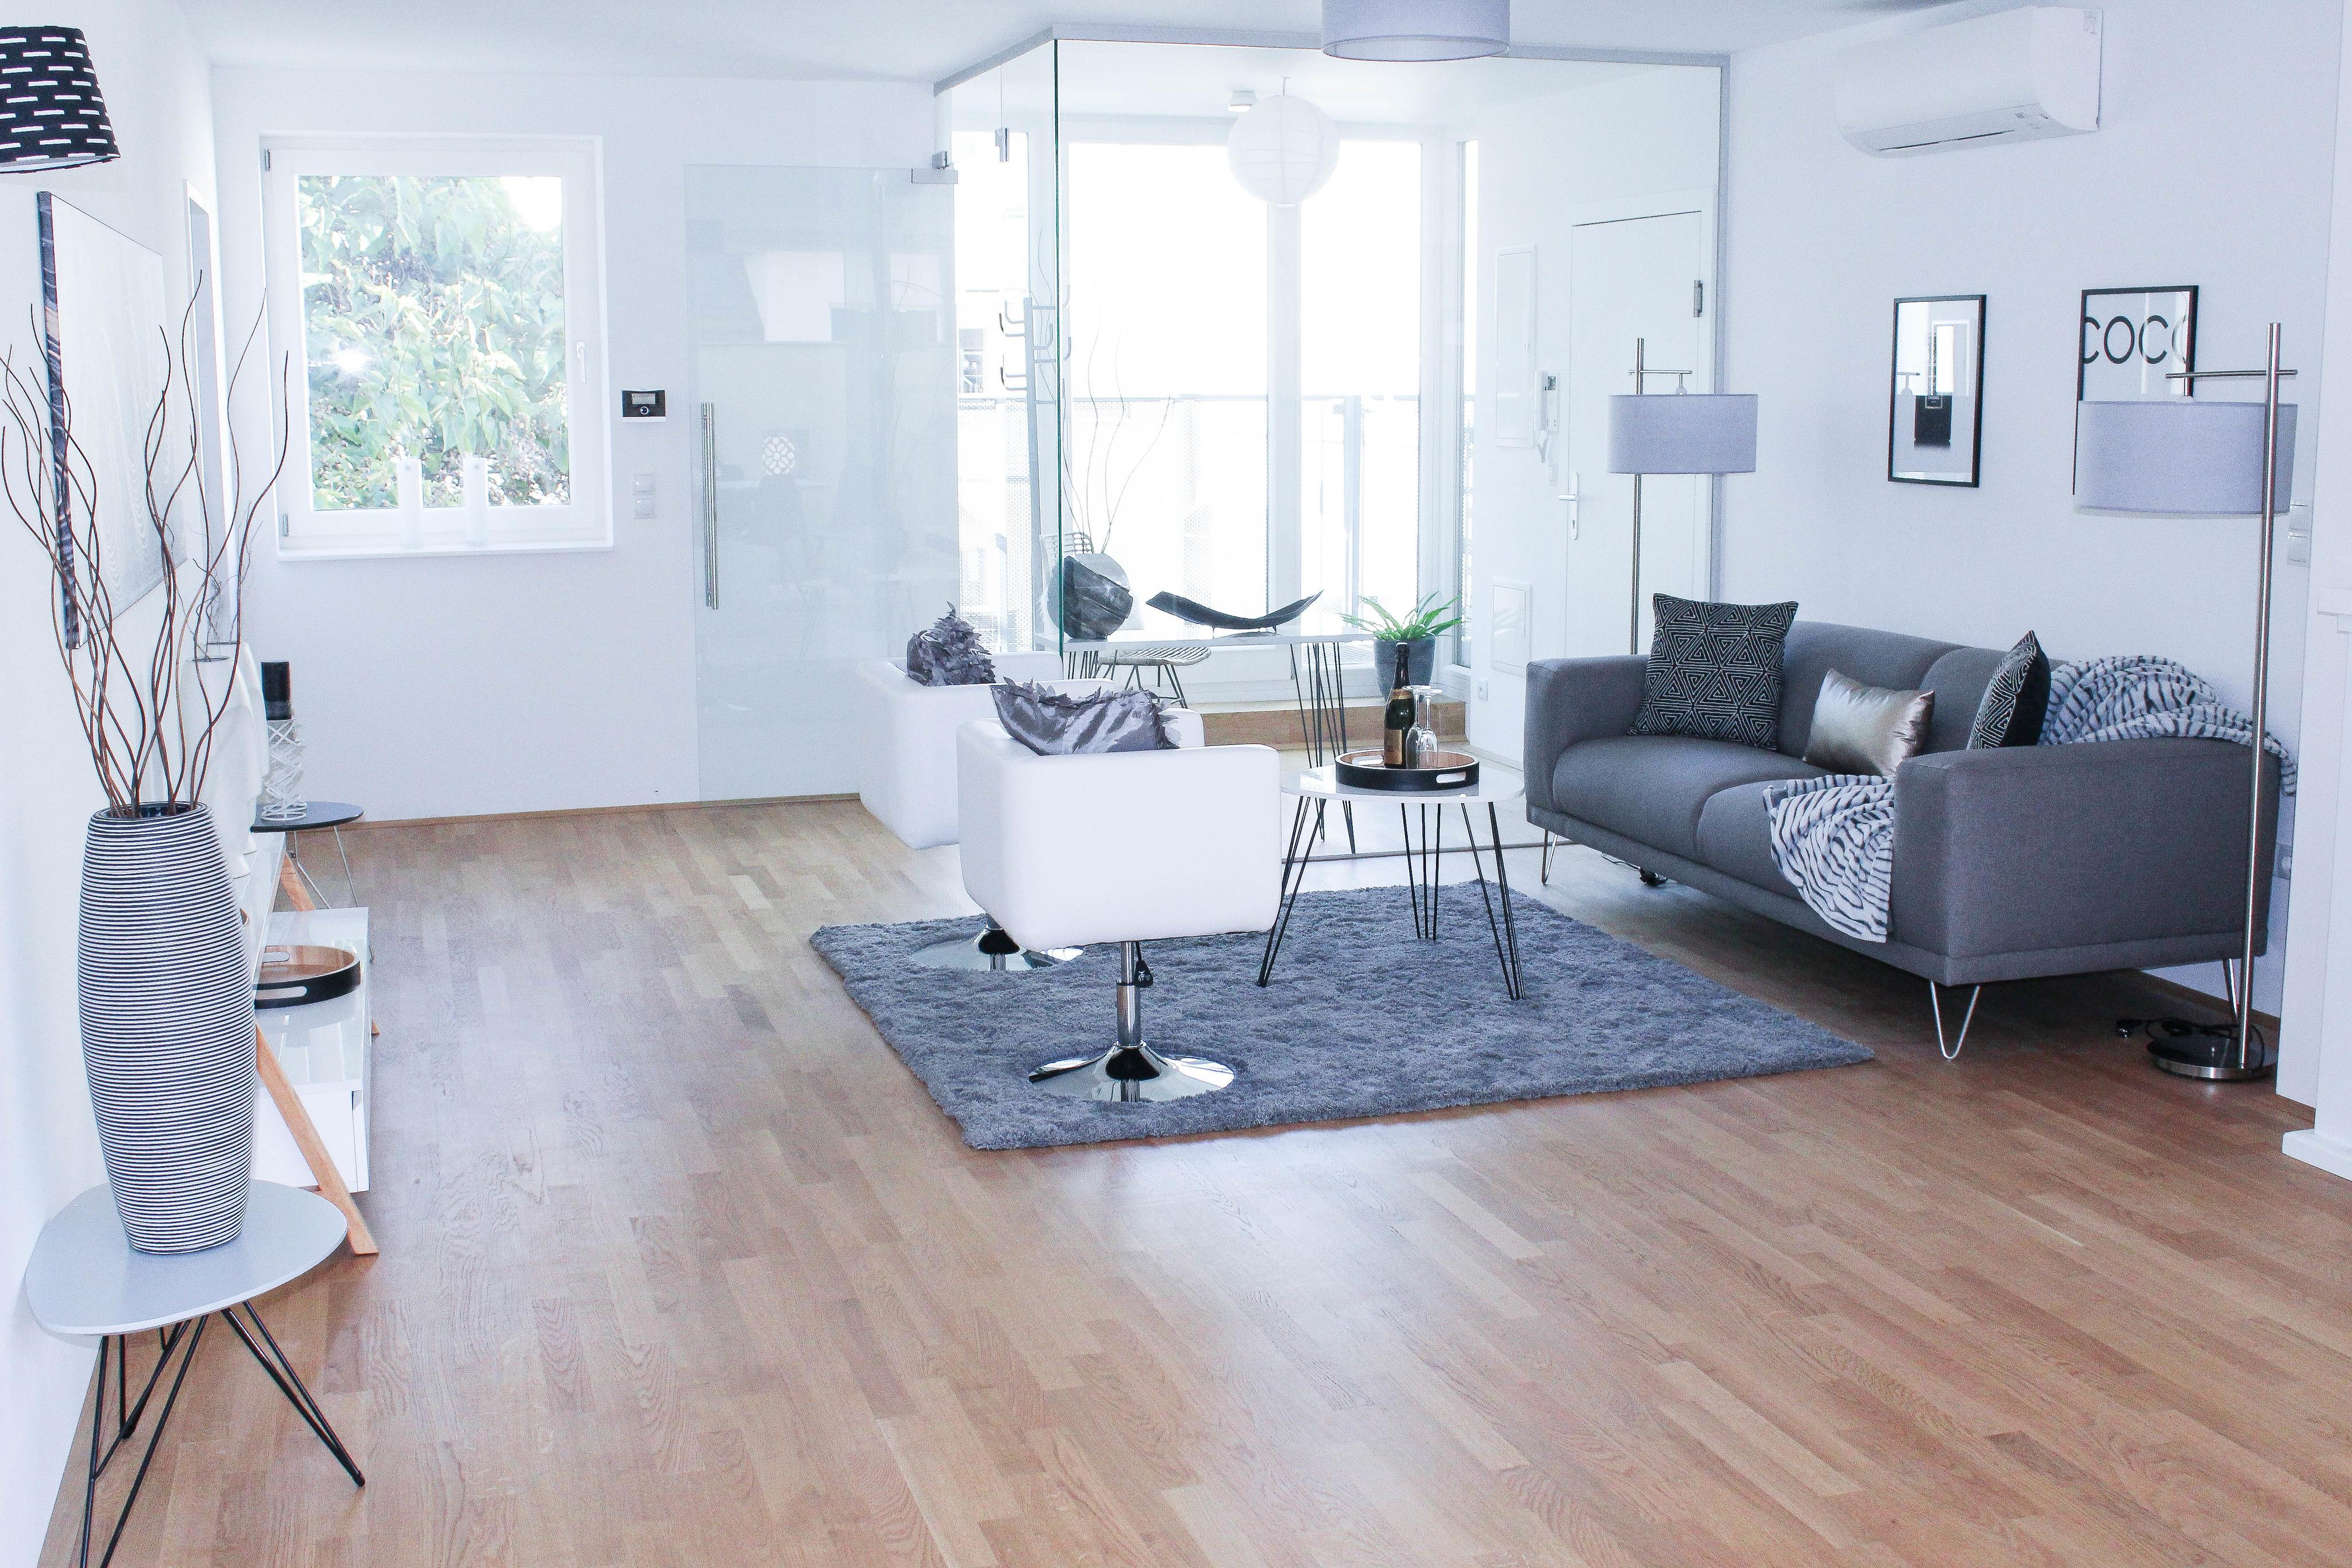 Home staging wohnzimmer  0308e8d0 c591 493c ba97 e2eb4f9dfeed